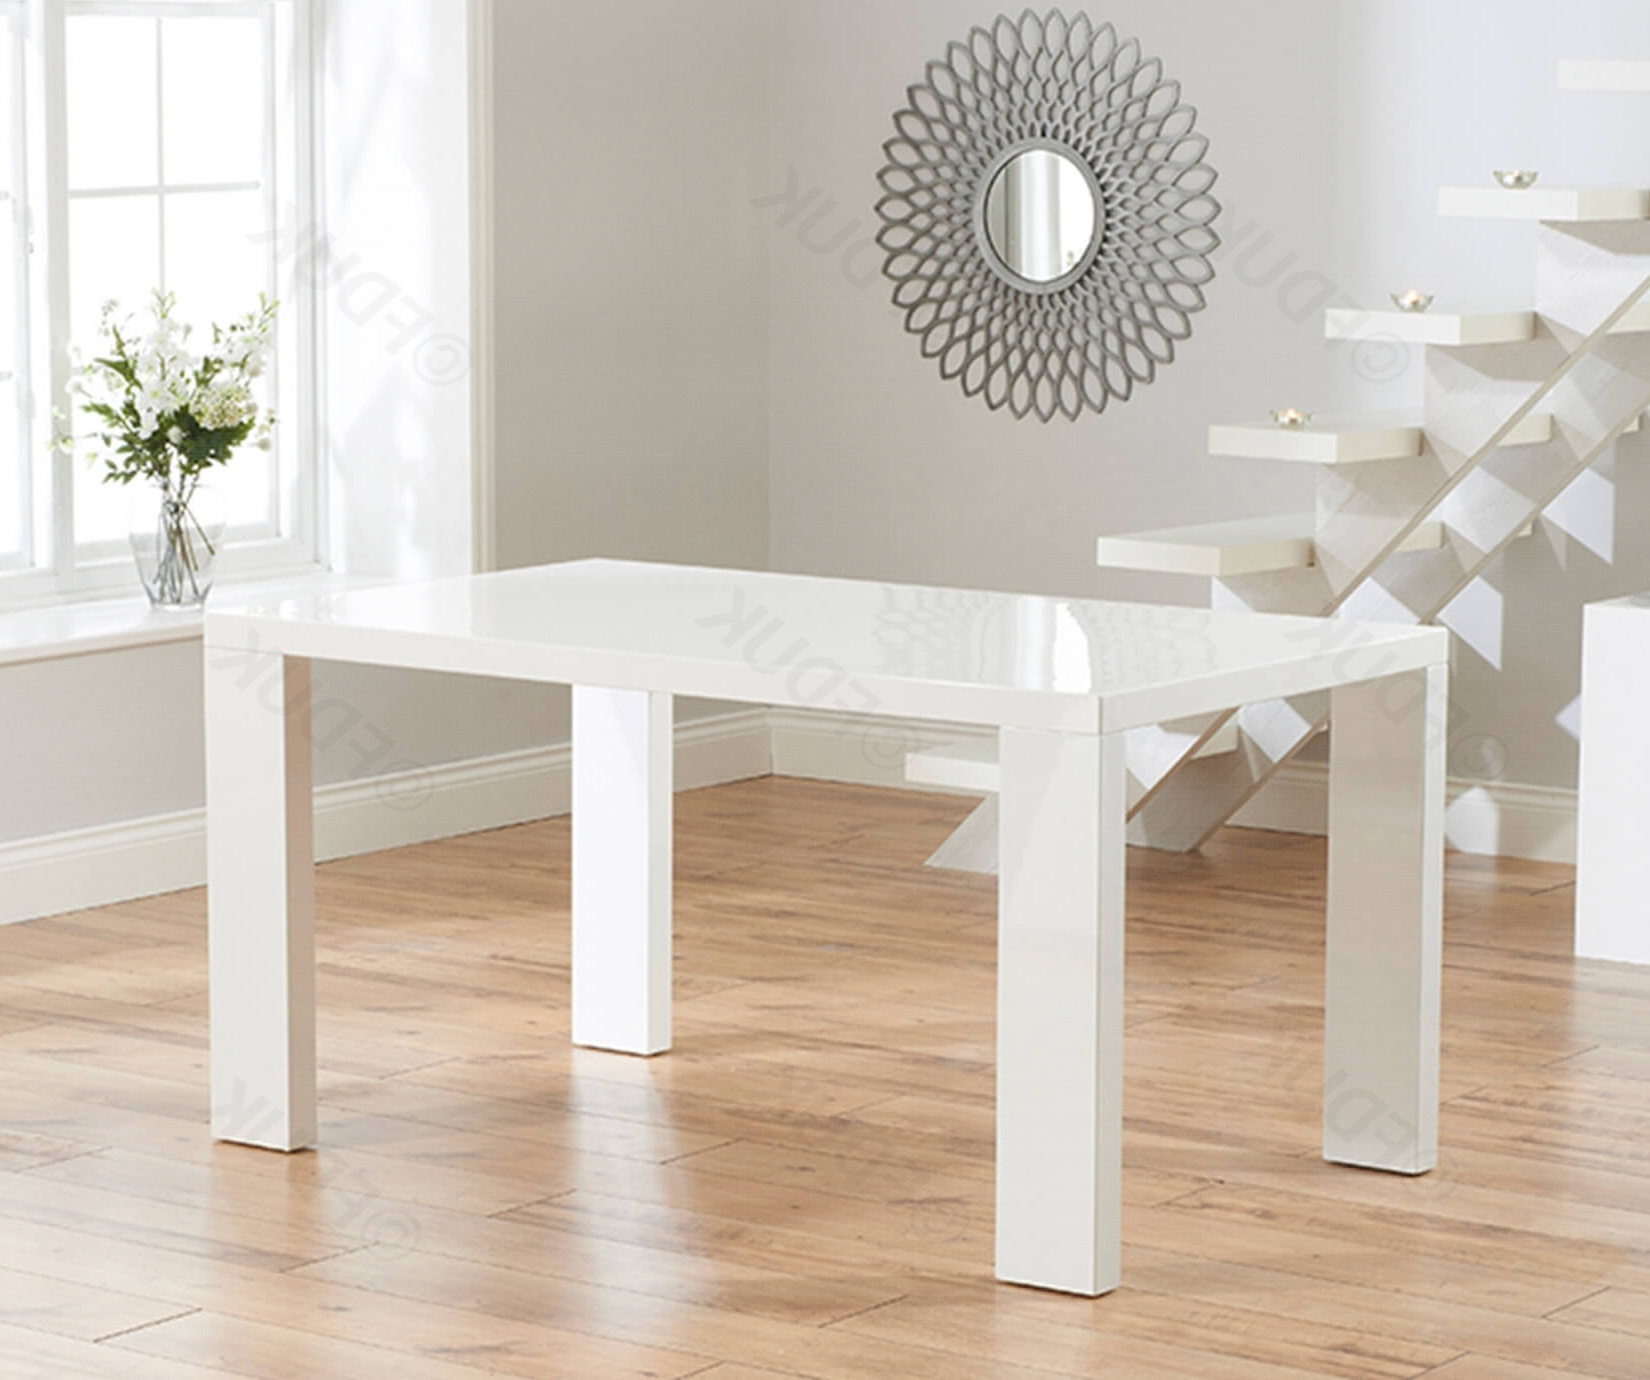 Cheap White High Gloss Dining Tables Regarding Current Mark Harris Metz 150Cm White High Gloss Dining Table Only Fduk Best Price  Guarantee We Will Beat Our Competitors Price! Give Our Sales Team A Call On (Gallery 4 of 25)